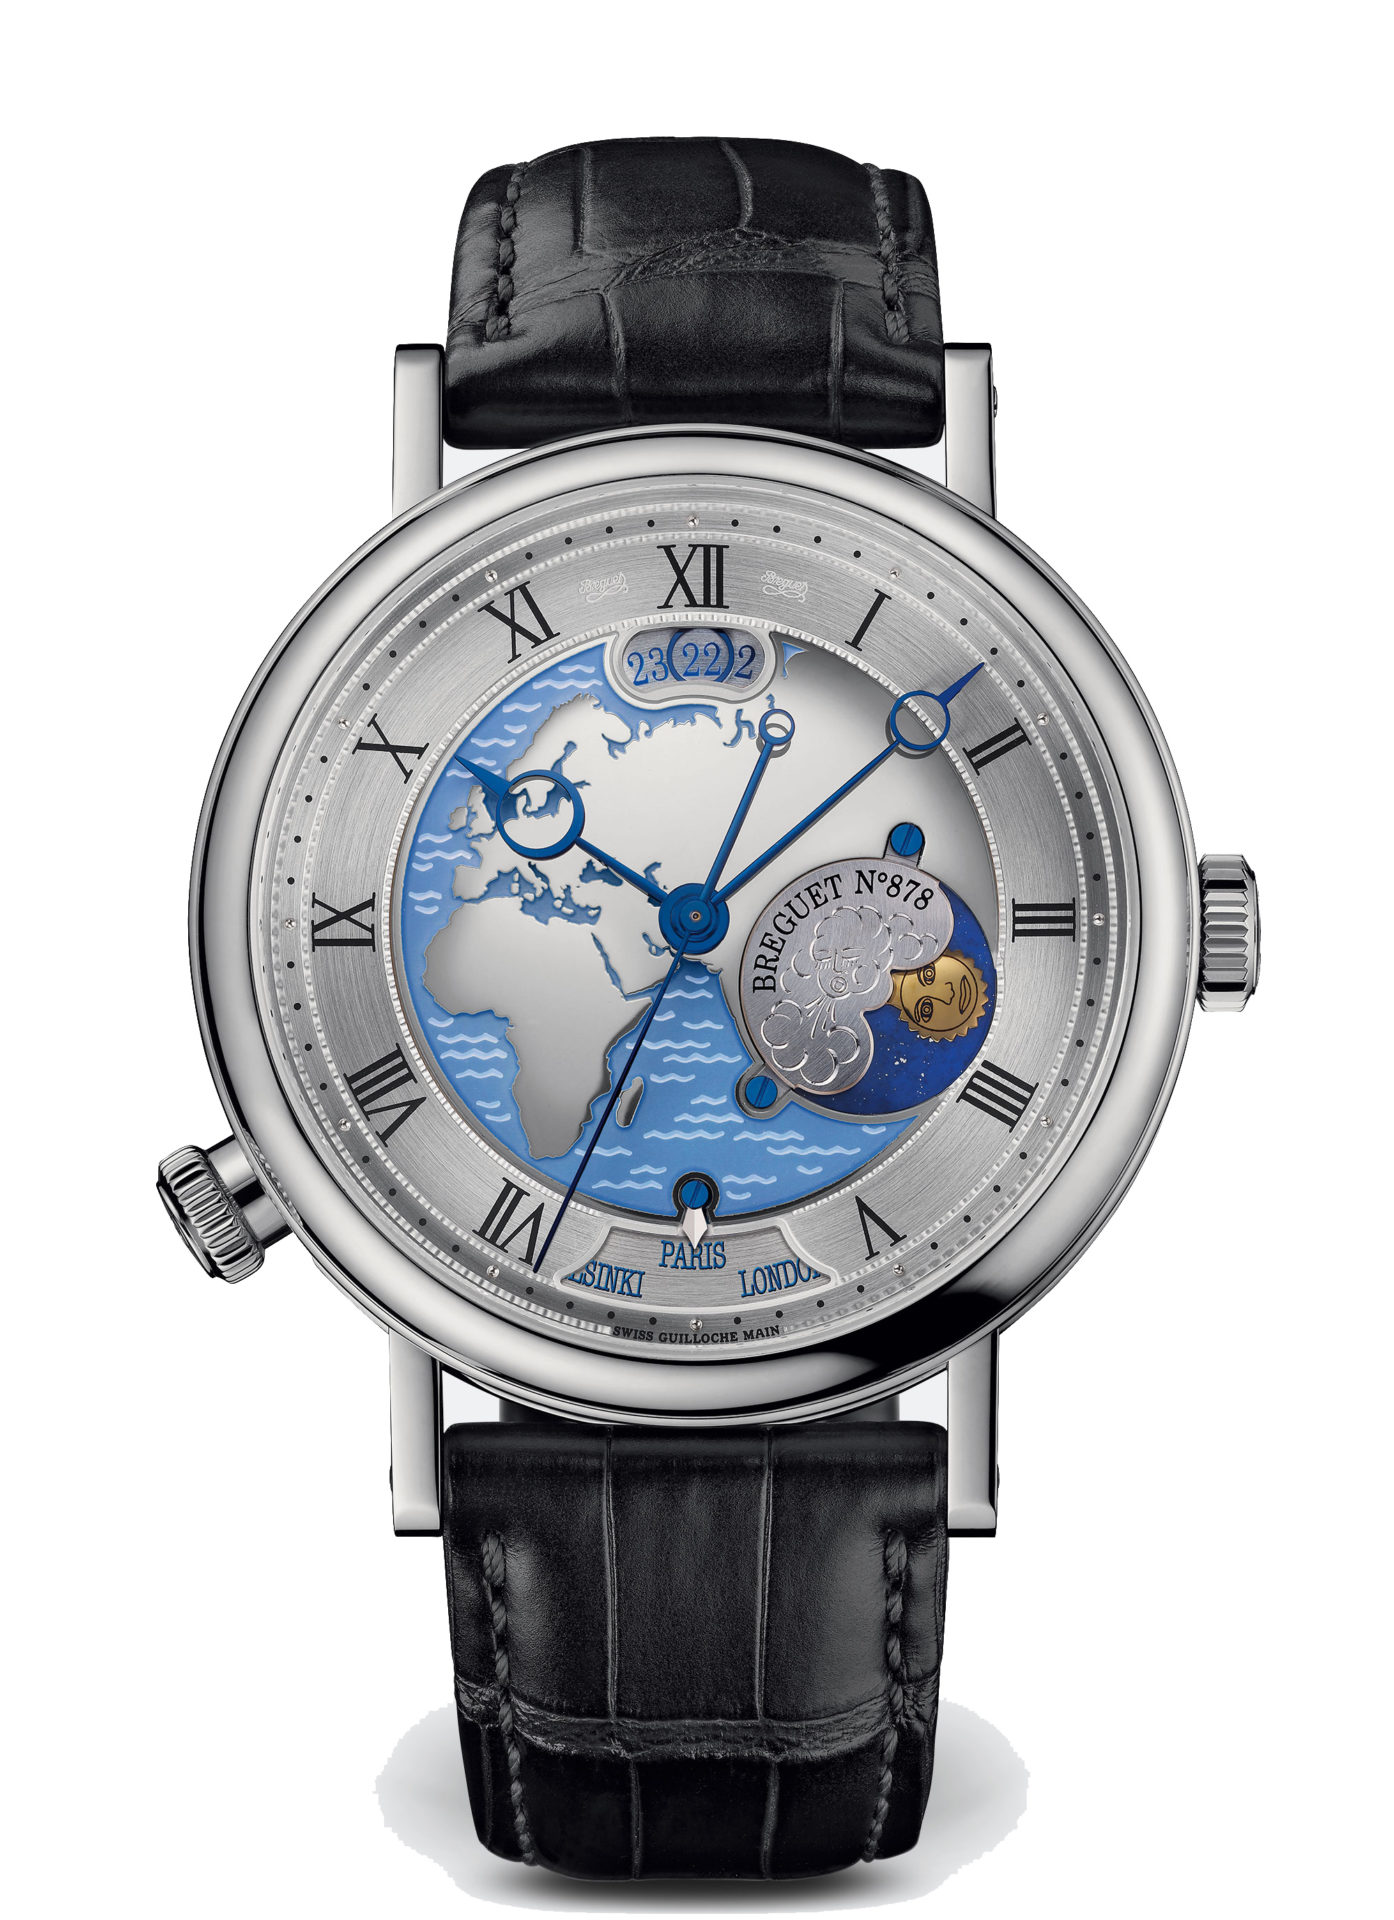 Breguet-Classique-Hora-Mundi-5717-Hall-of-Time-5717pt-eu-9zu